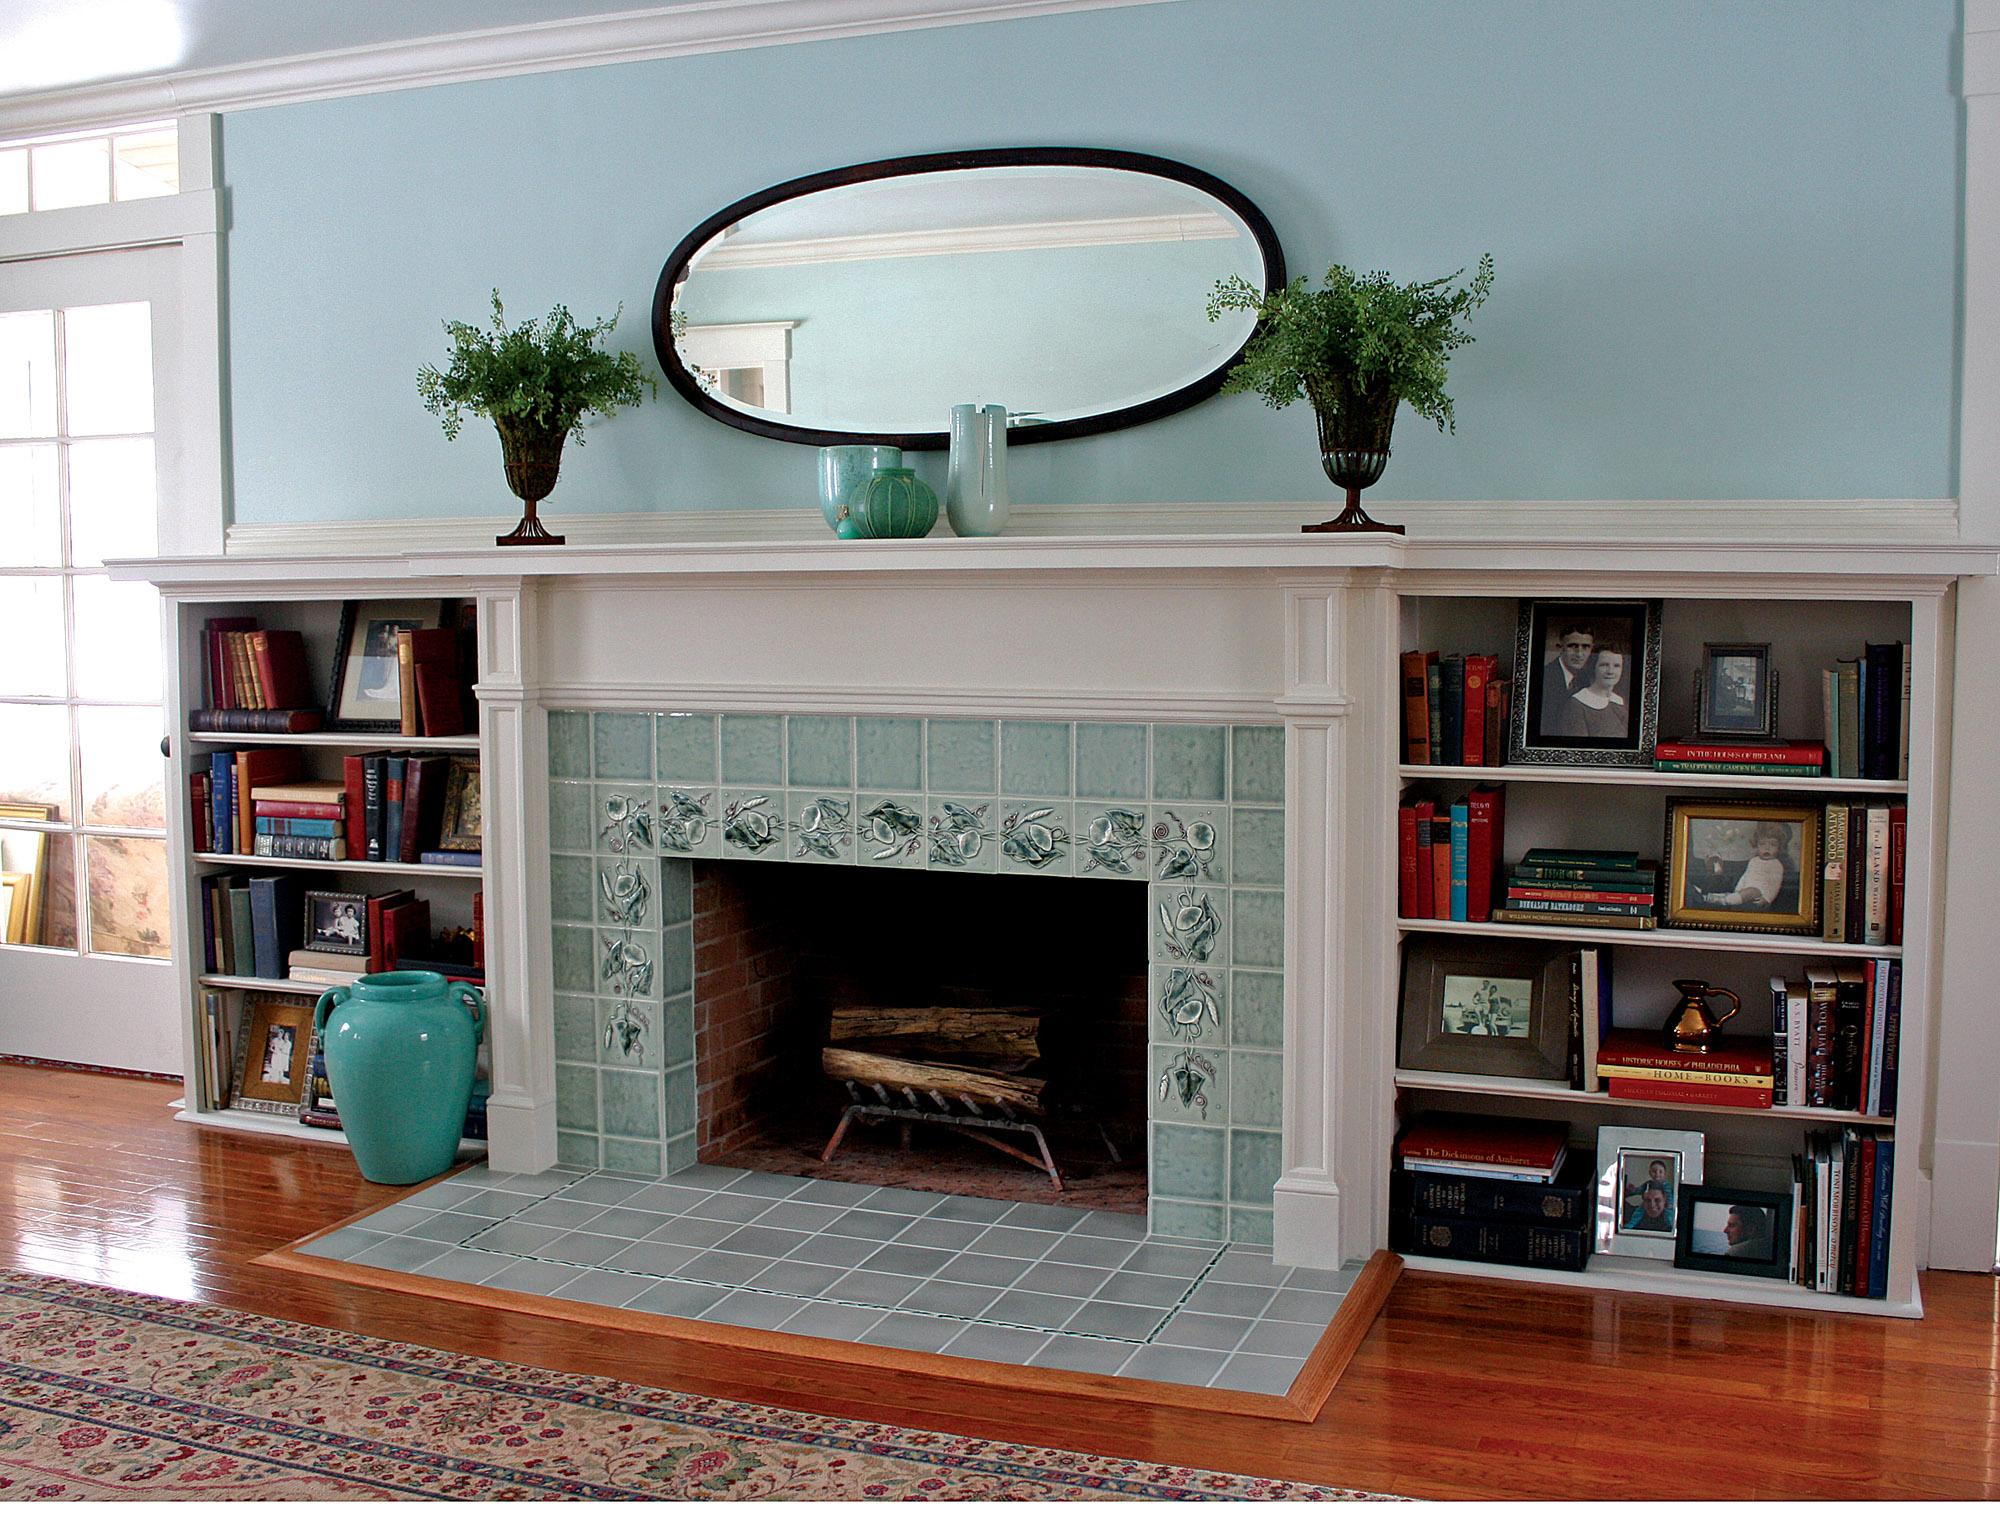 Arts & Crafts fireplace tile